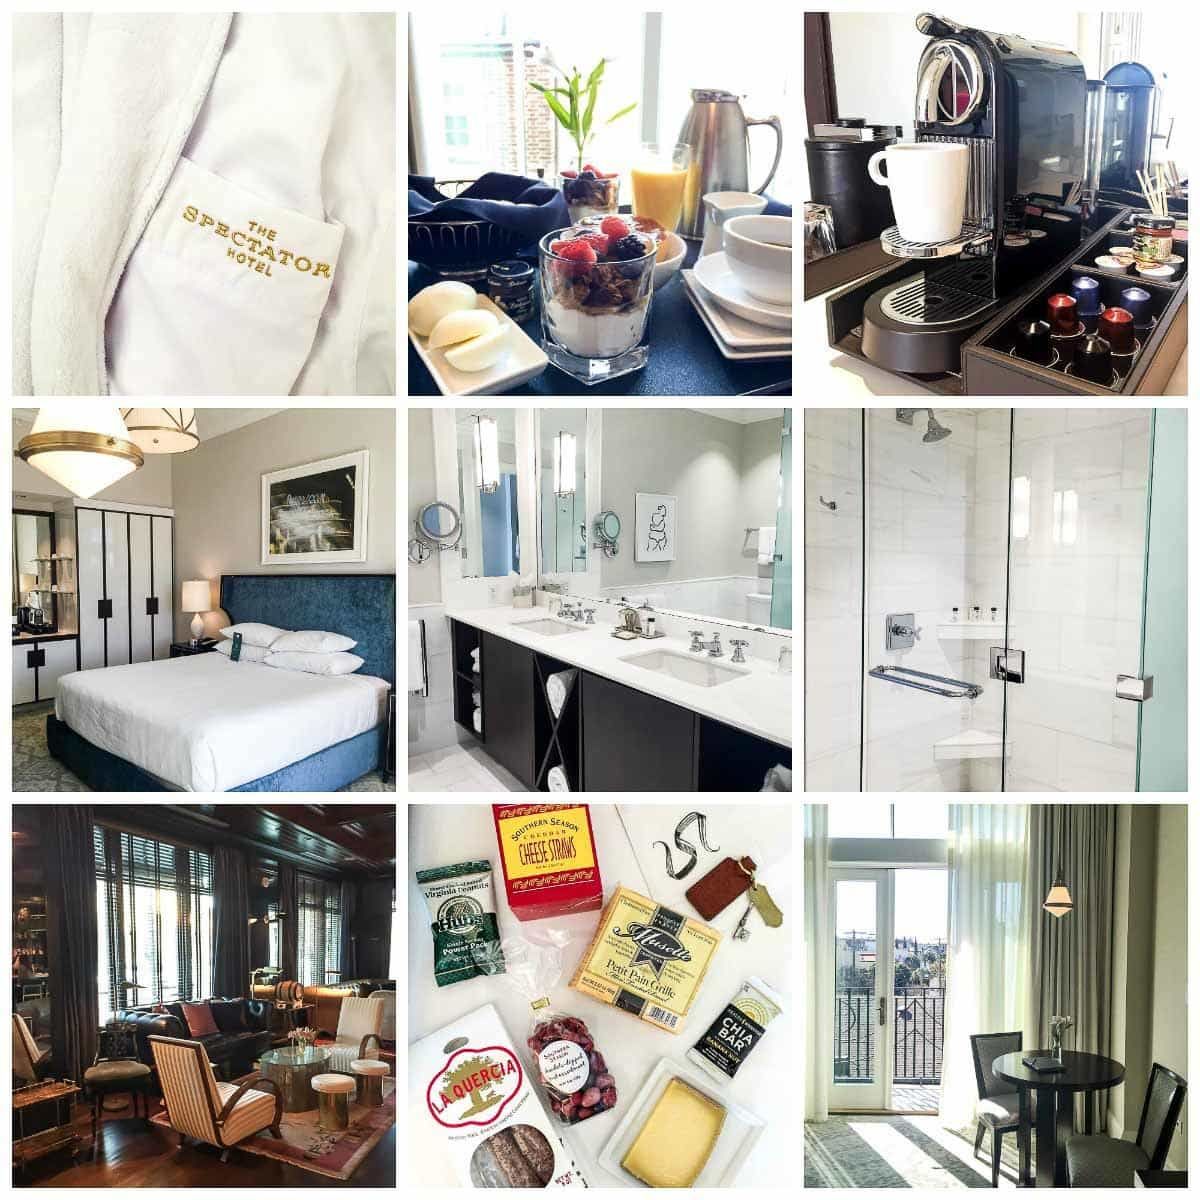 The best hotel to stay in downtown Charleston, South Carolina: The Spectator Hotel